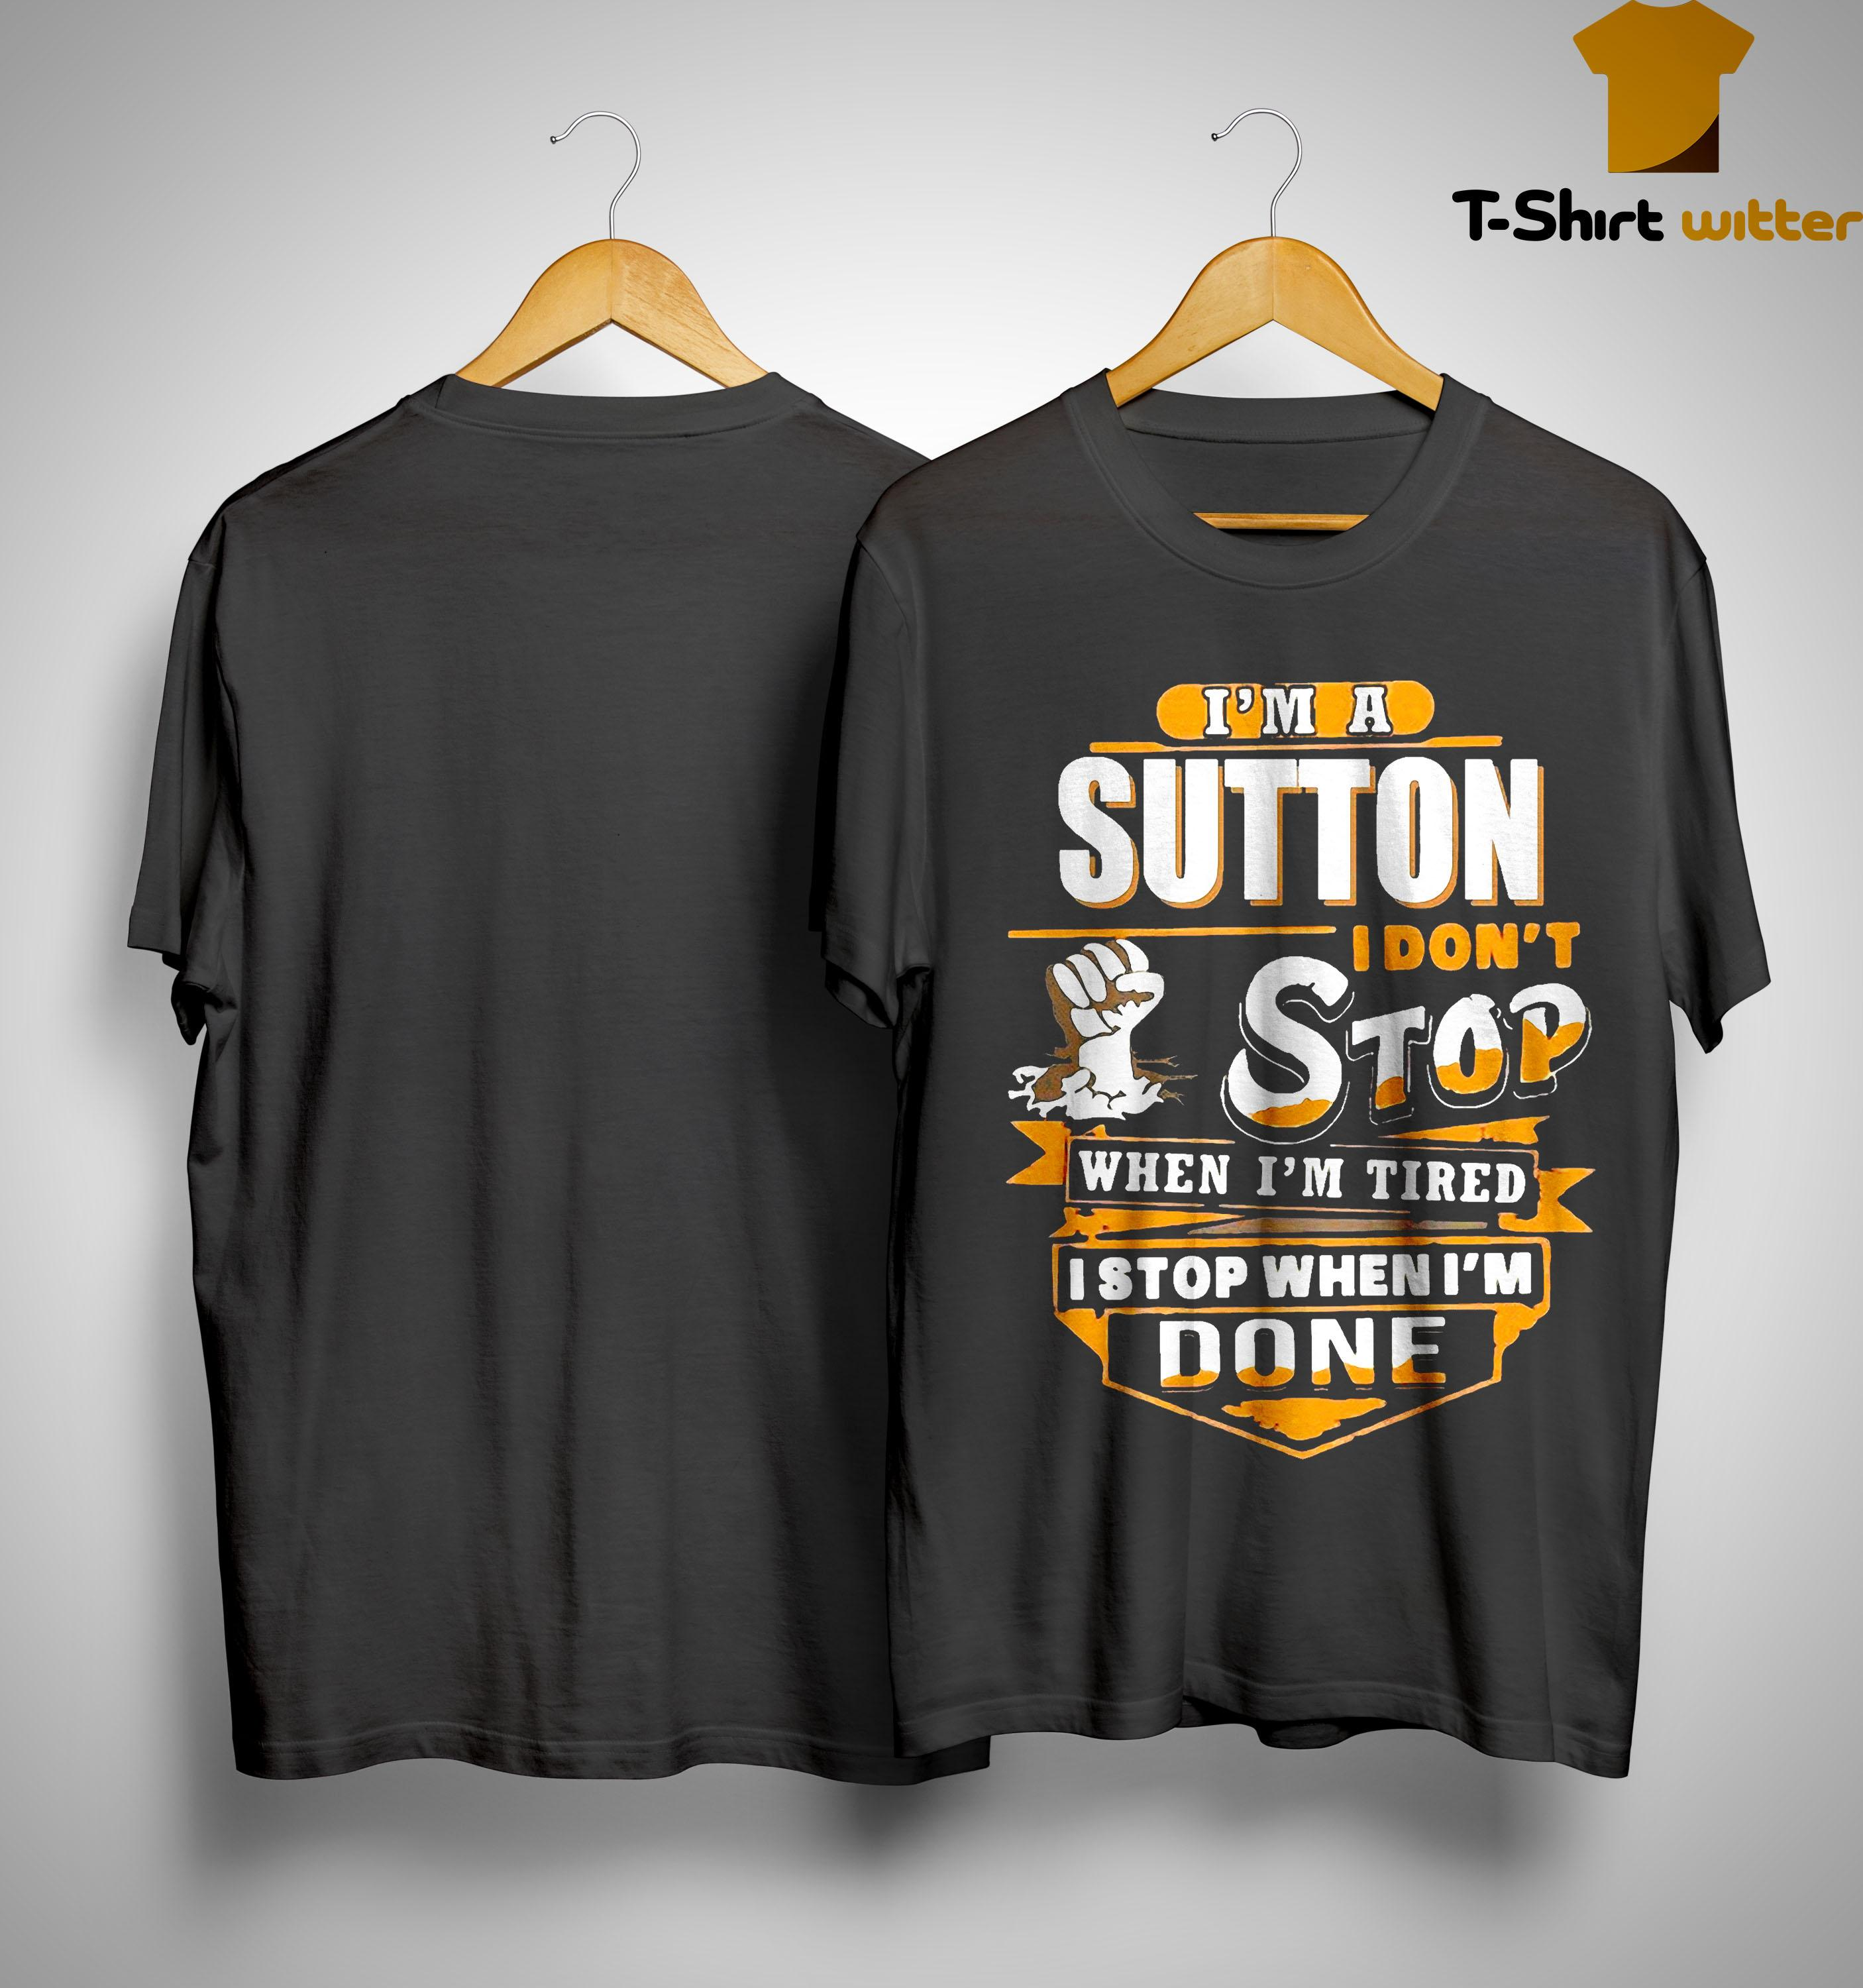 I'm A Sutton I Don't Stop When I'm Tired I Stop When I'm Done Shirt